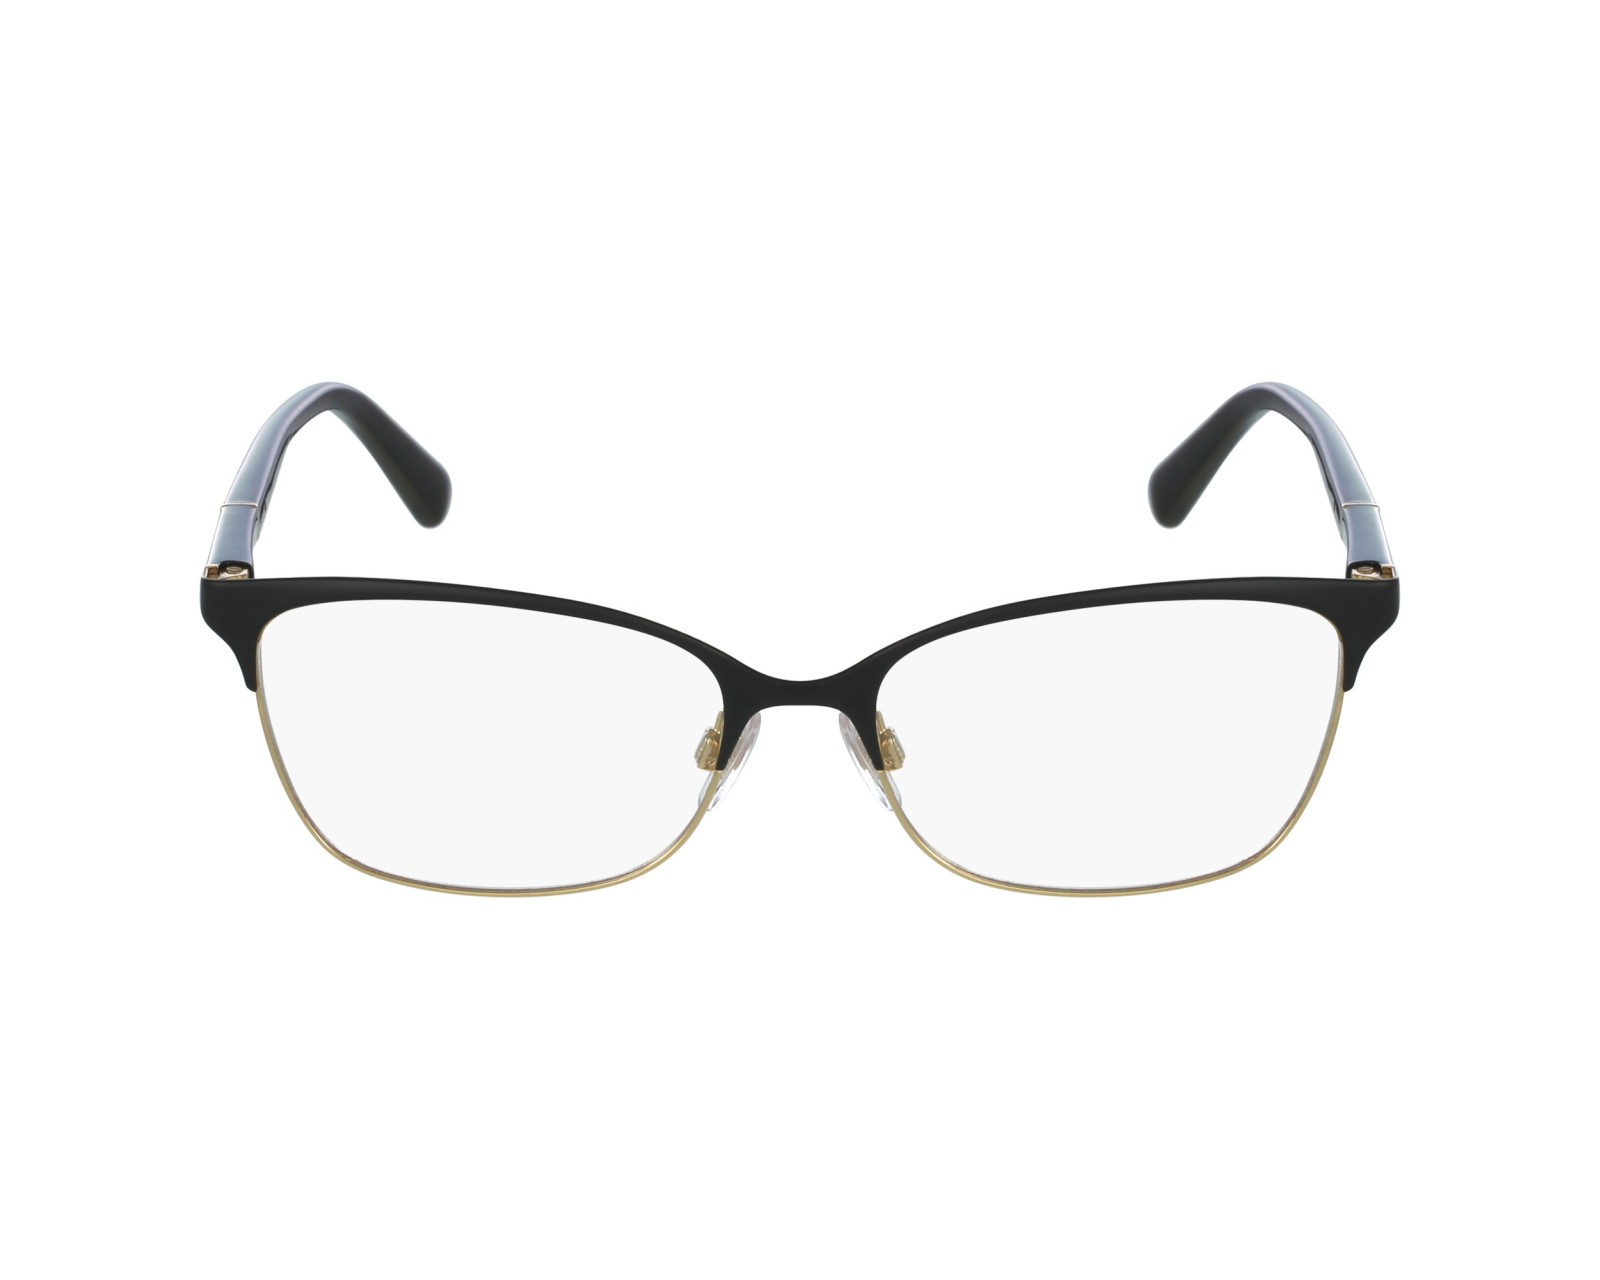 eyeglasses Dolce & Gabbana DG-1268 025 - Black Gold profile view